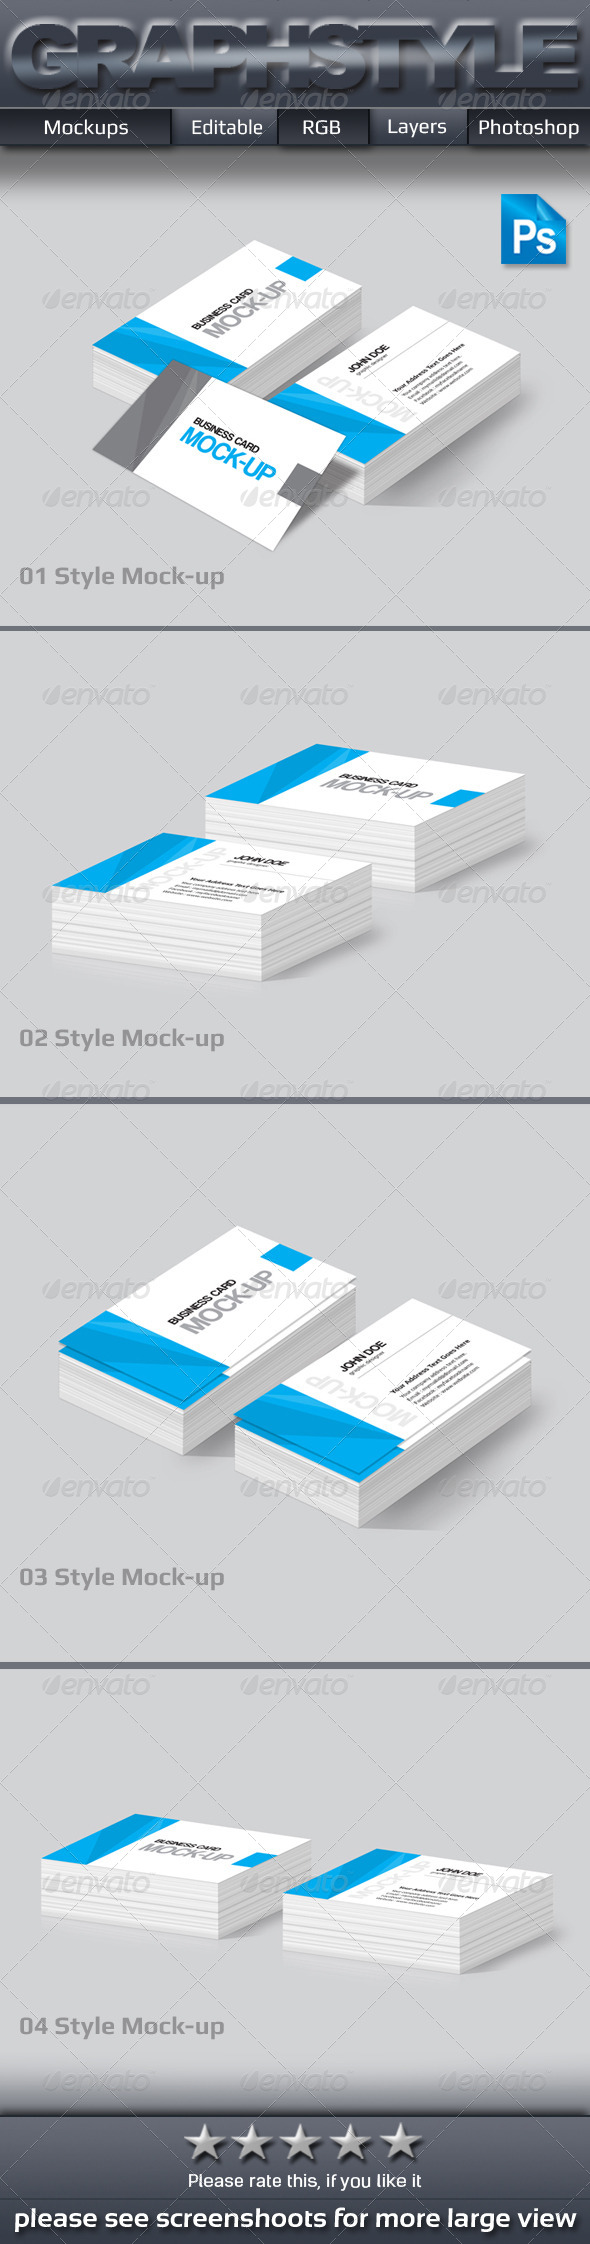 GraphicRiver Business Card Mock-up 7612417